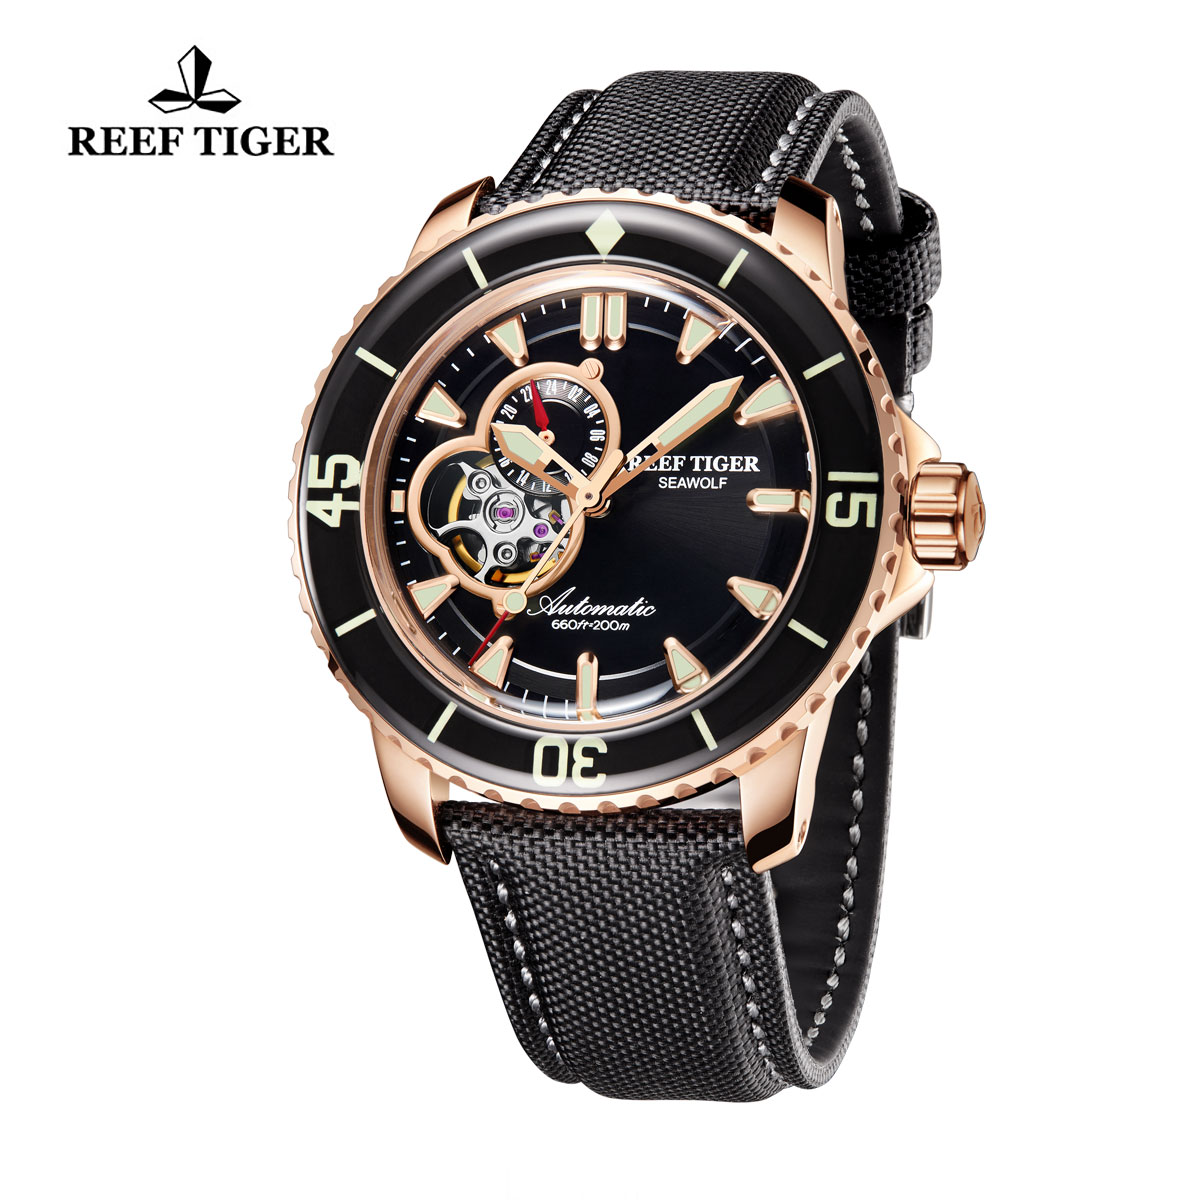 Reef Tiger Sea Wolf Dress Automatic Watch Rose Gold Black Dial Black Nylon/Leather Strap RGA3039-PBB